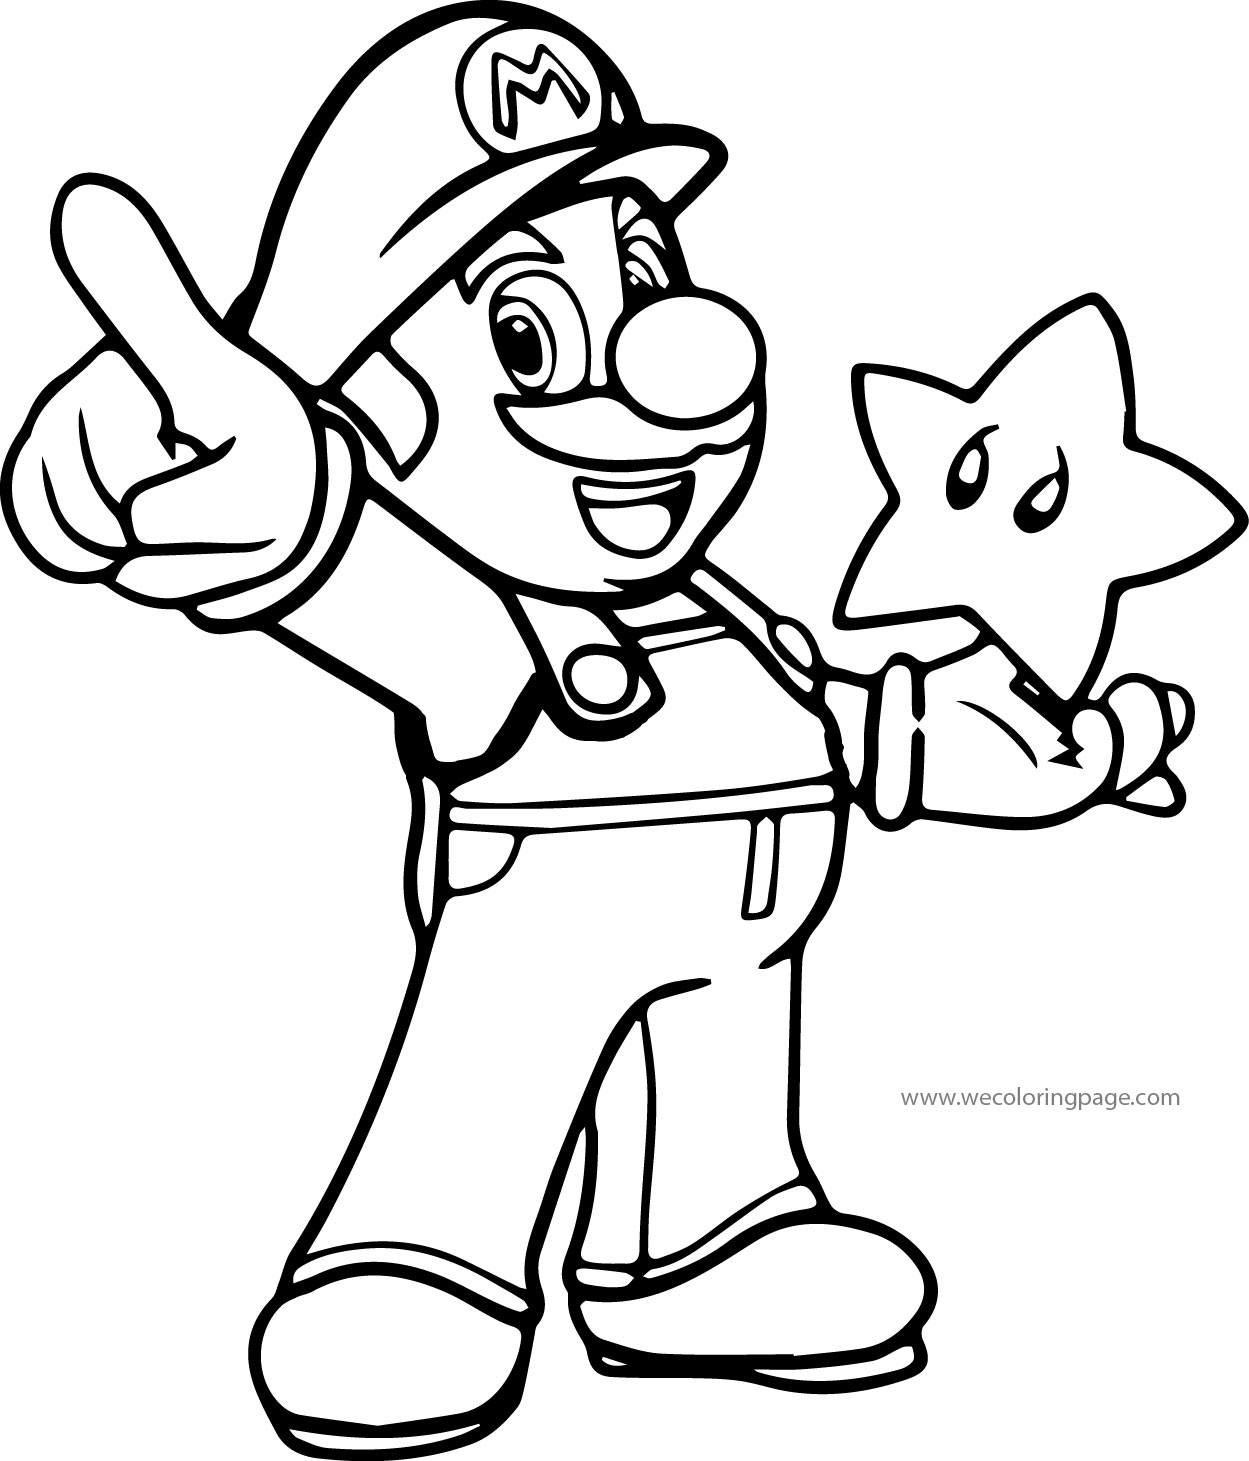 1249x1461 Printable Super Mario World Coloring Pages Free Coloring Pages